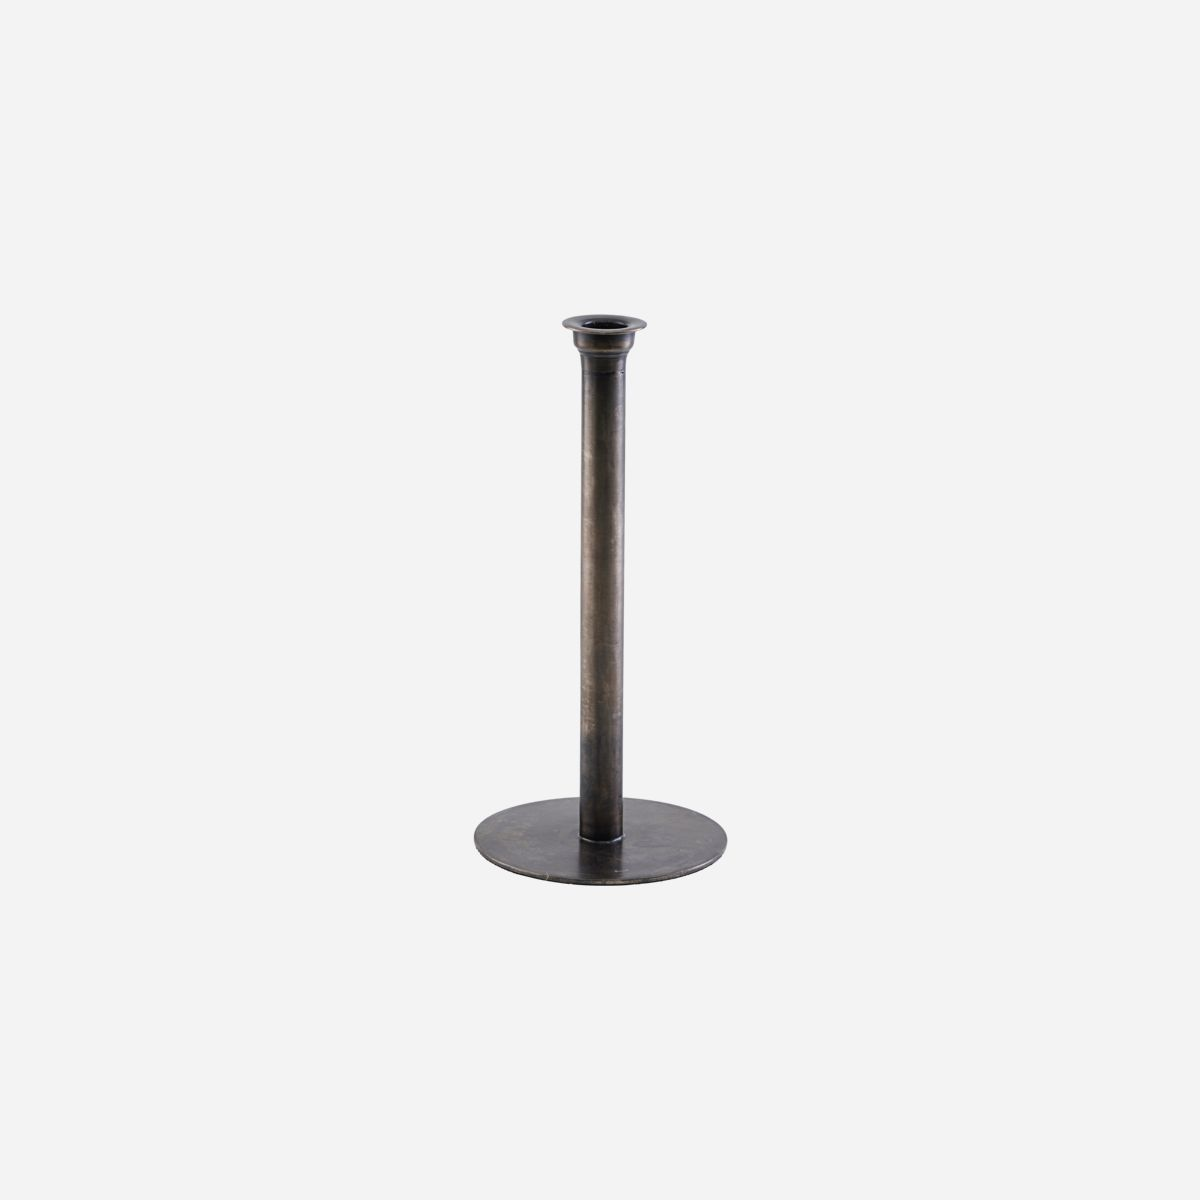 Candle stand, Latuna, Antique copper, (candle: 201210005), Finish/Colour may vary